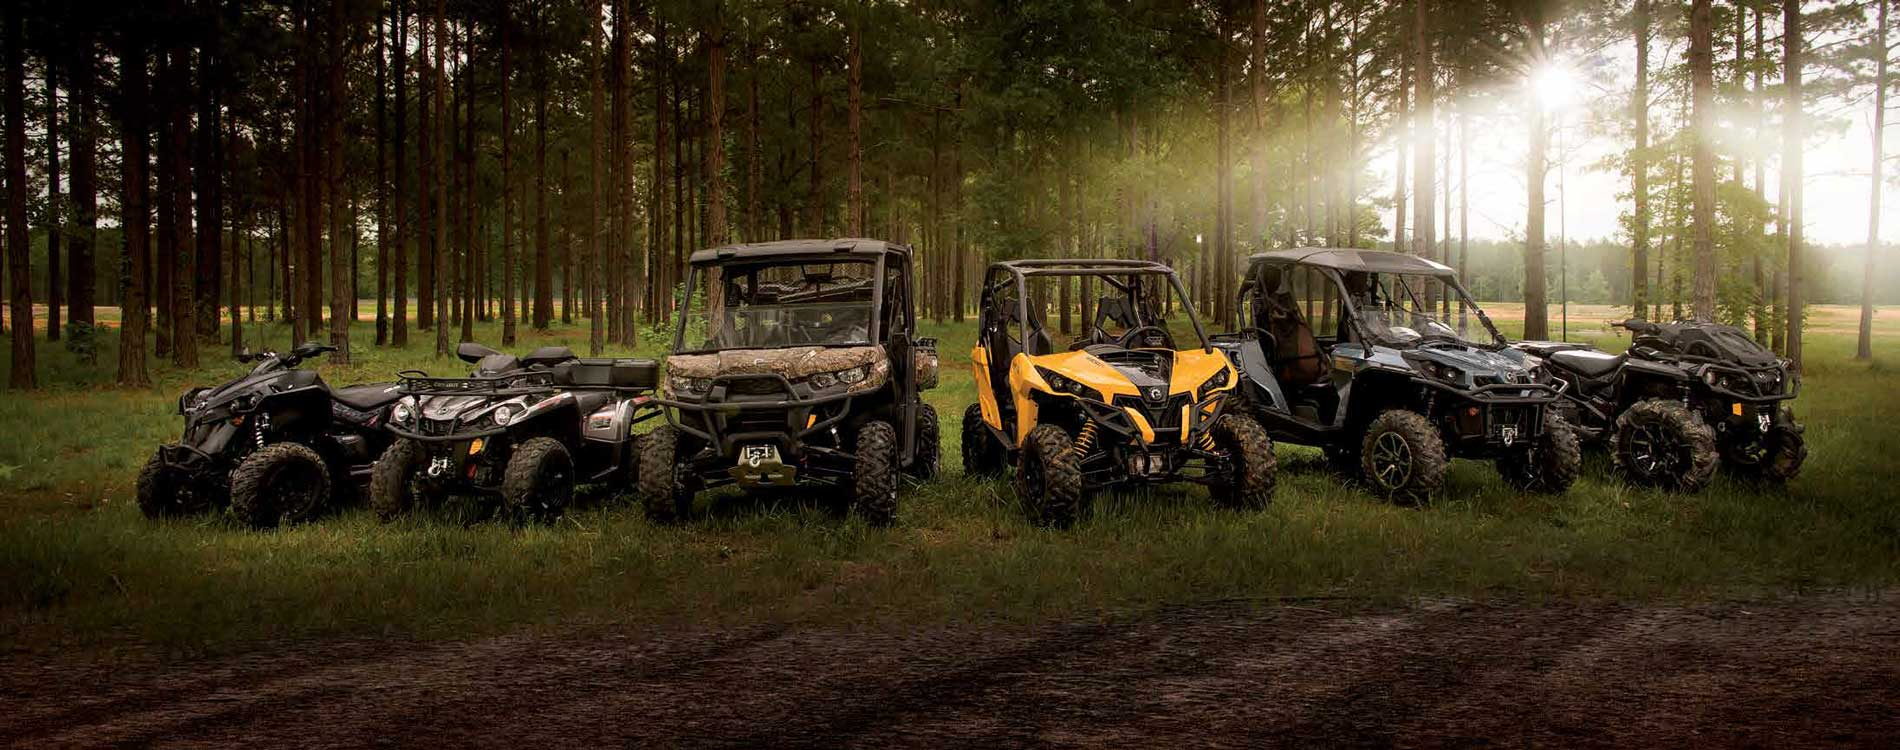 The latest can am quad models every year (2017) | OtoNautika